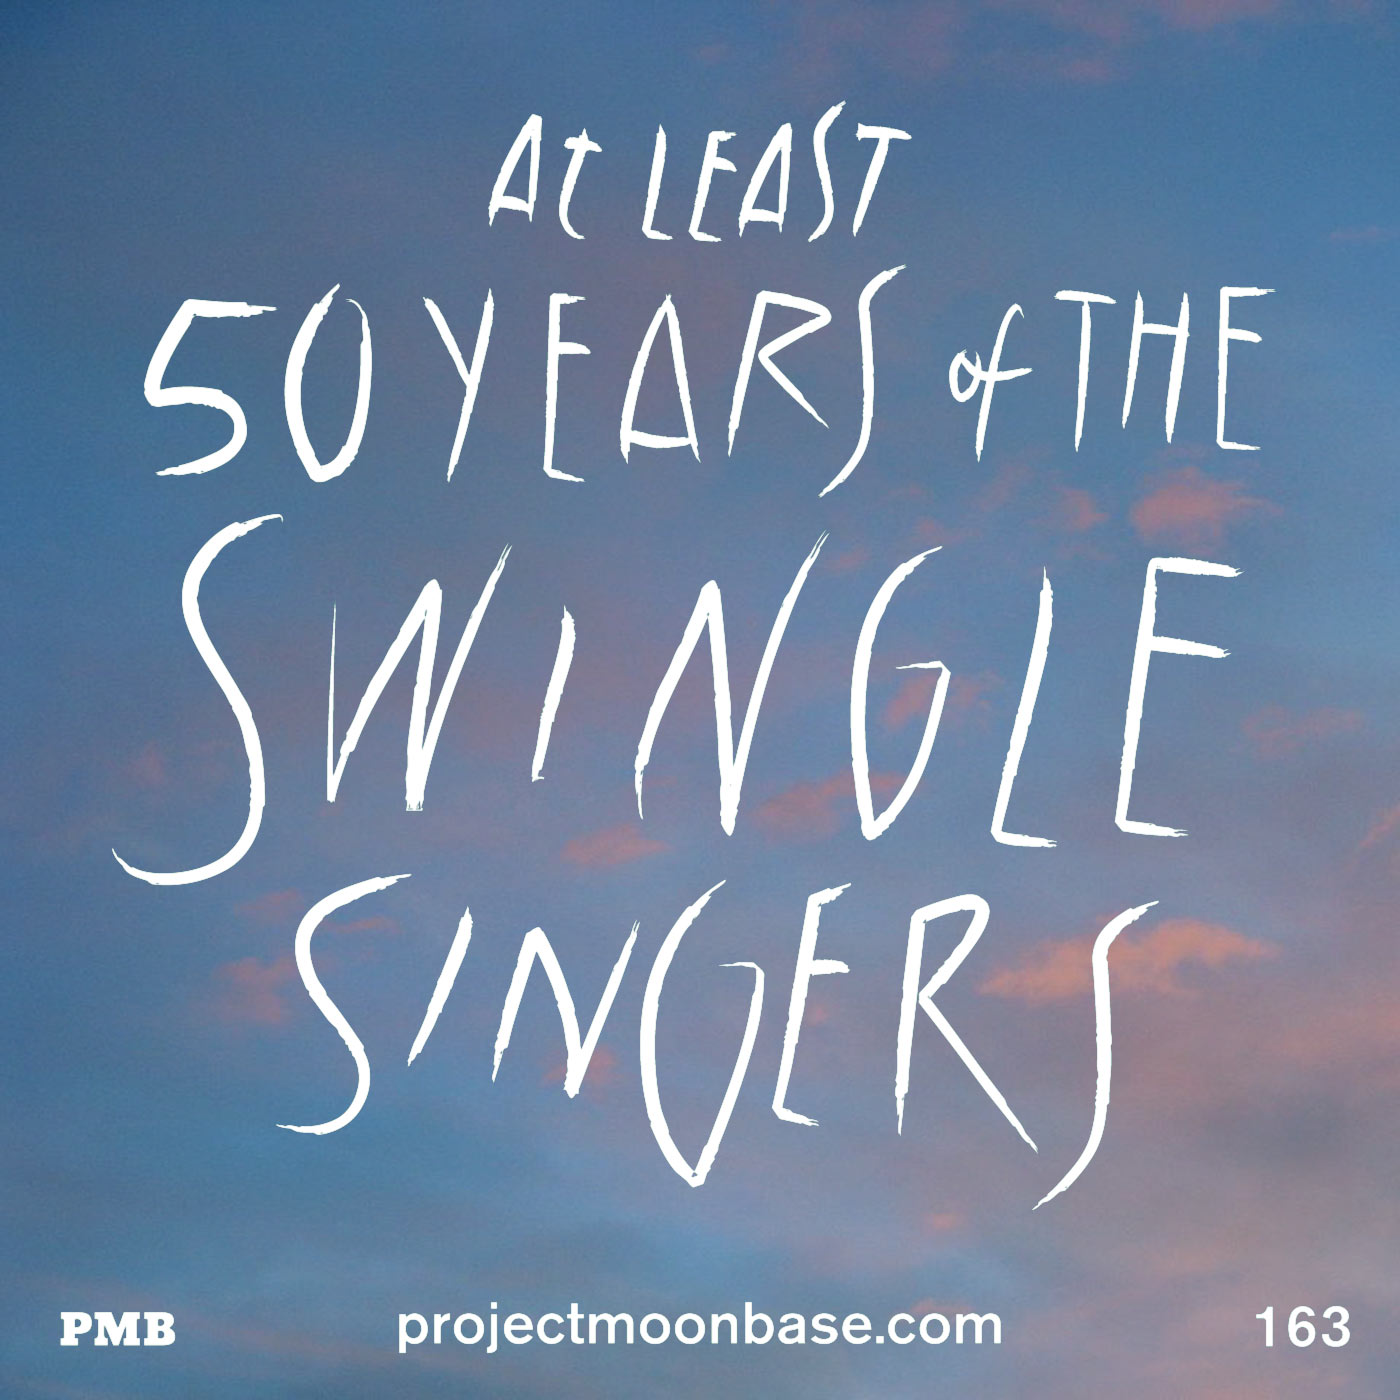 PMB163 In Close Harmony - At Least 50 Years of the Swingle Singers